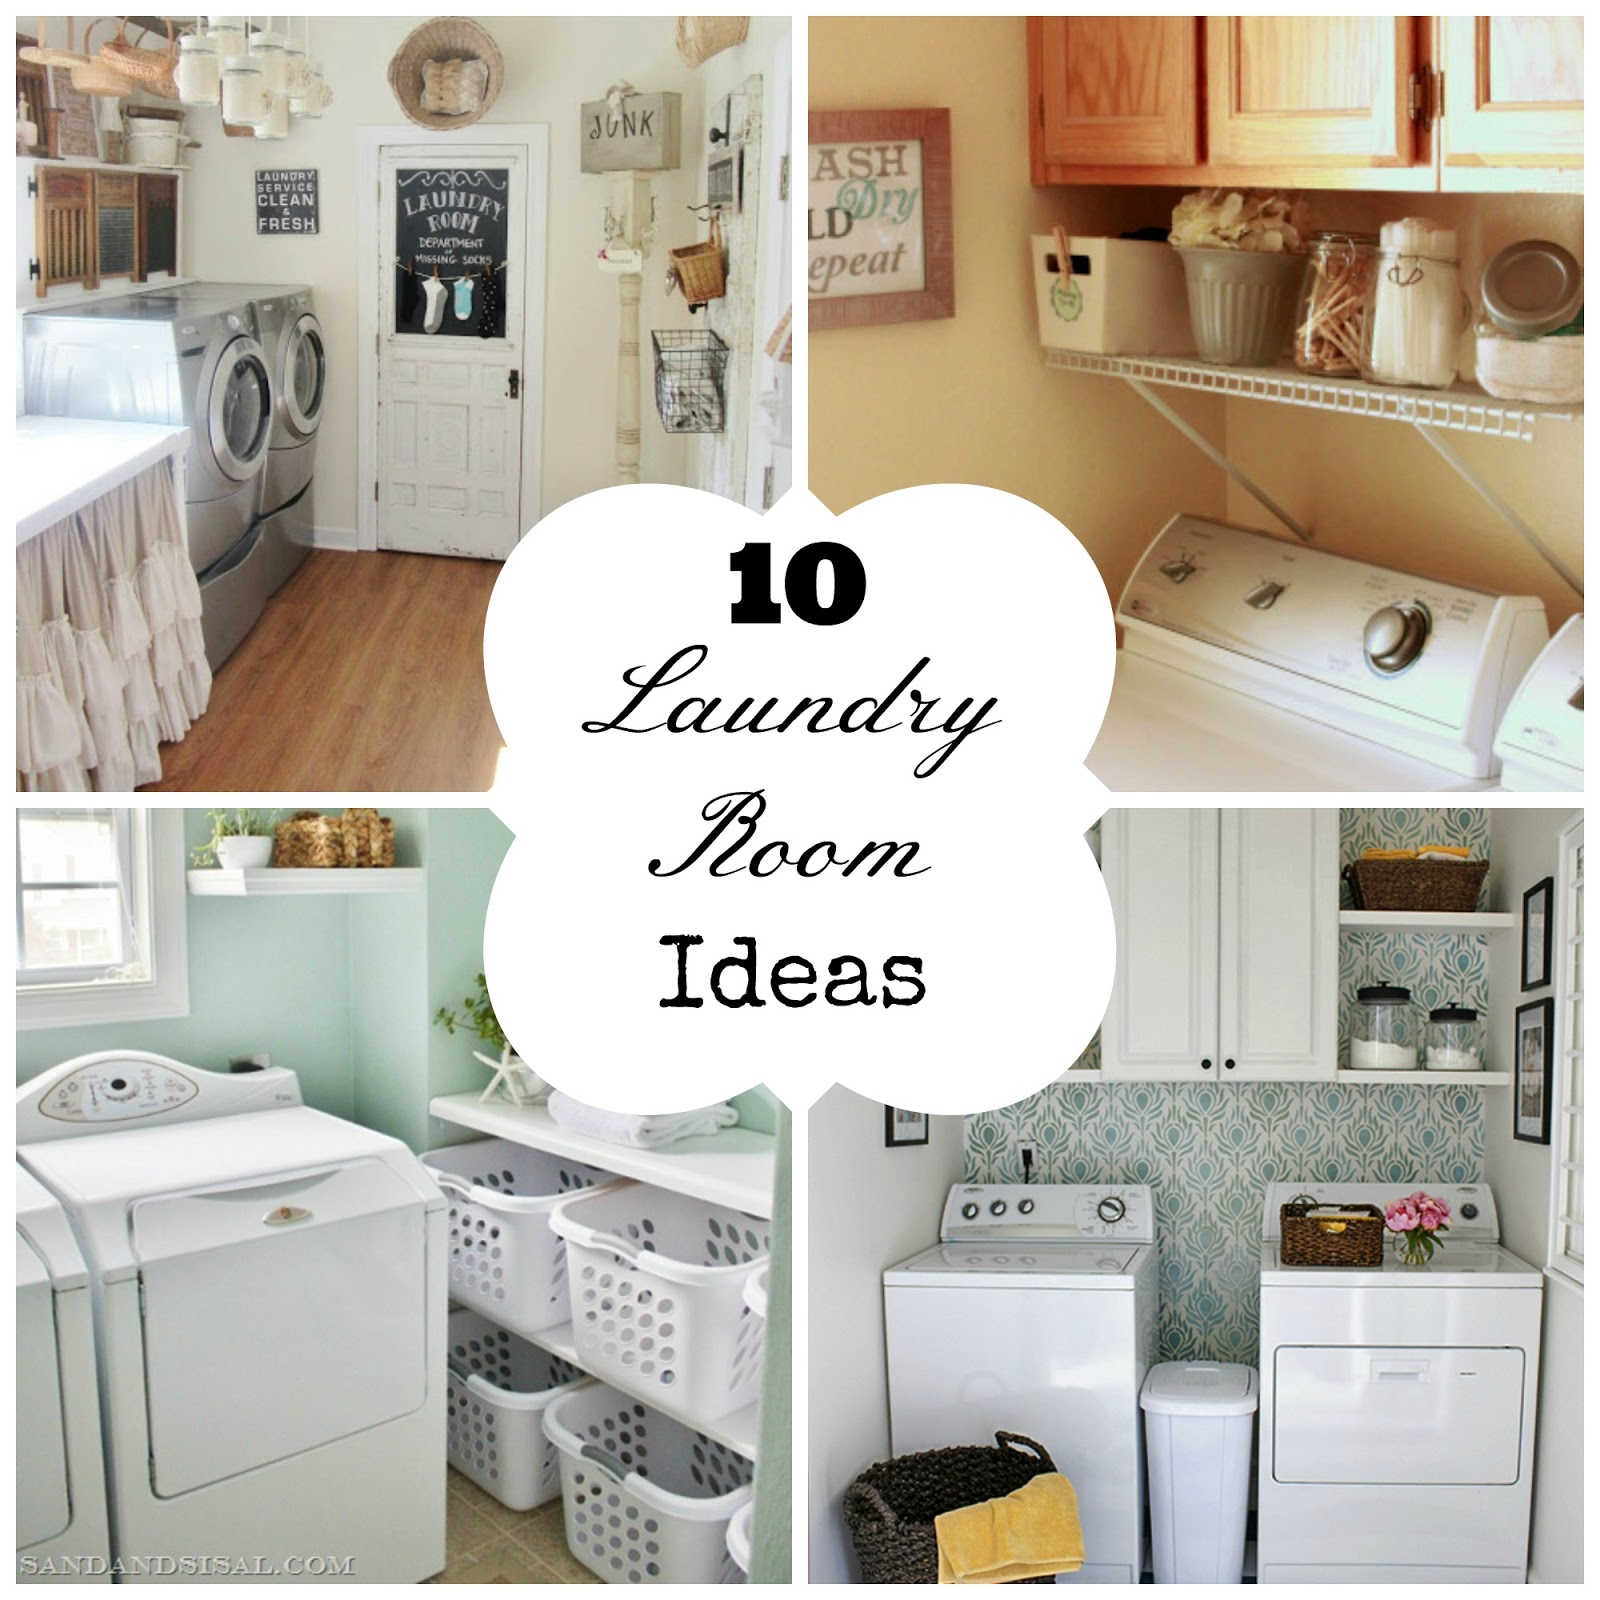 Laundry room ideas modern diy art designs for Laundry home